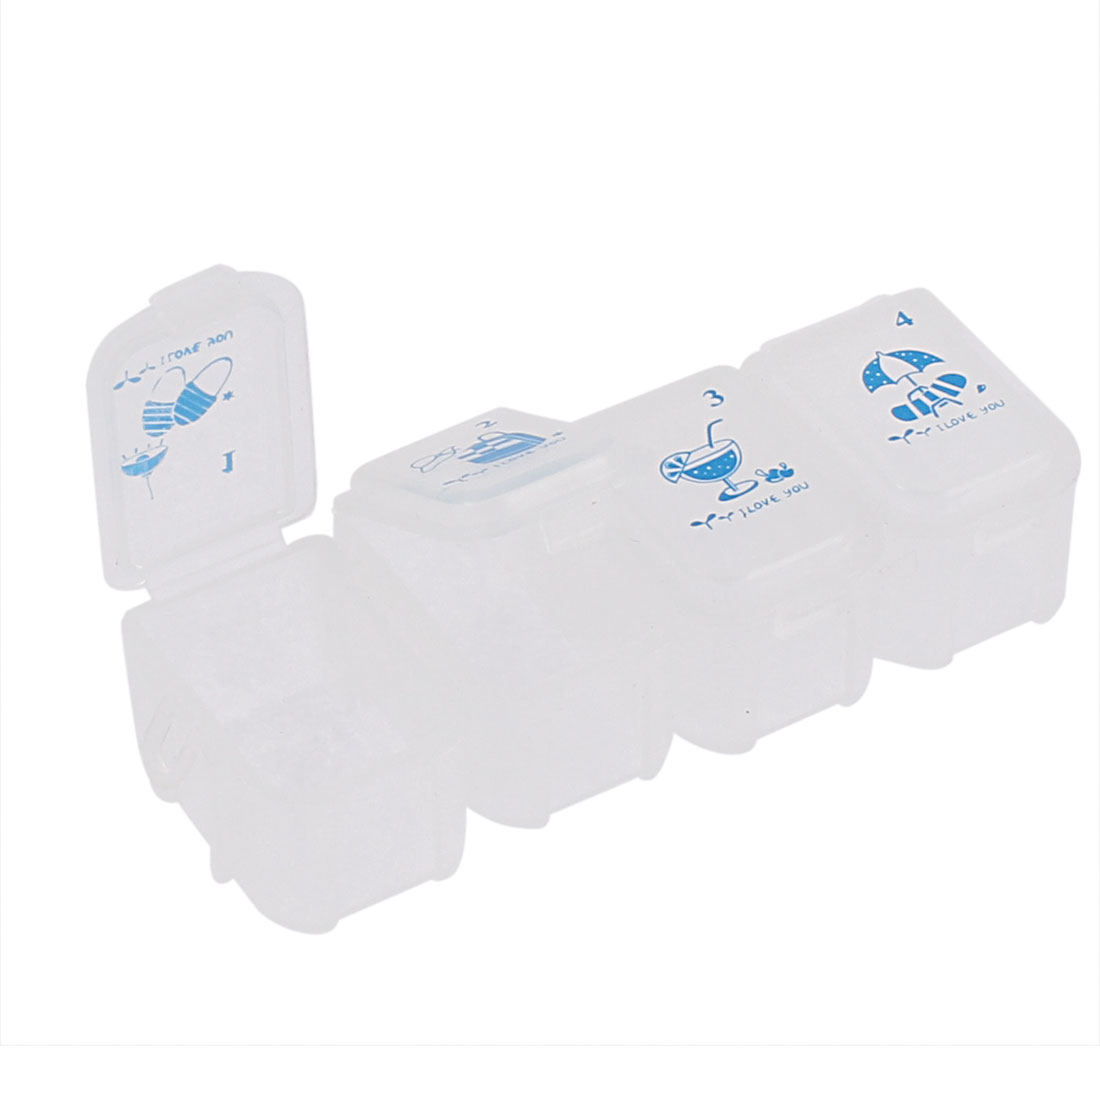 Travel Plastic 4 Compartments Pill Box Case Organizer Blue White